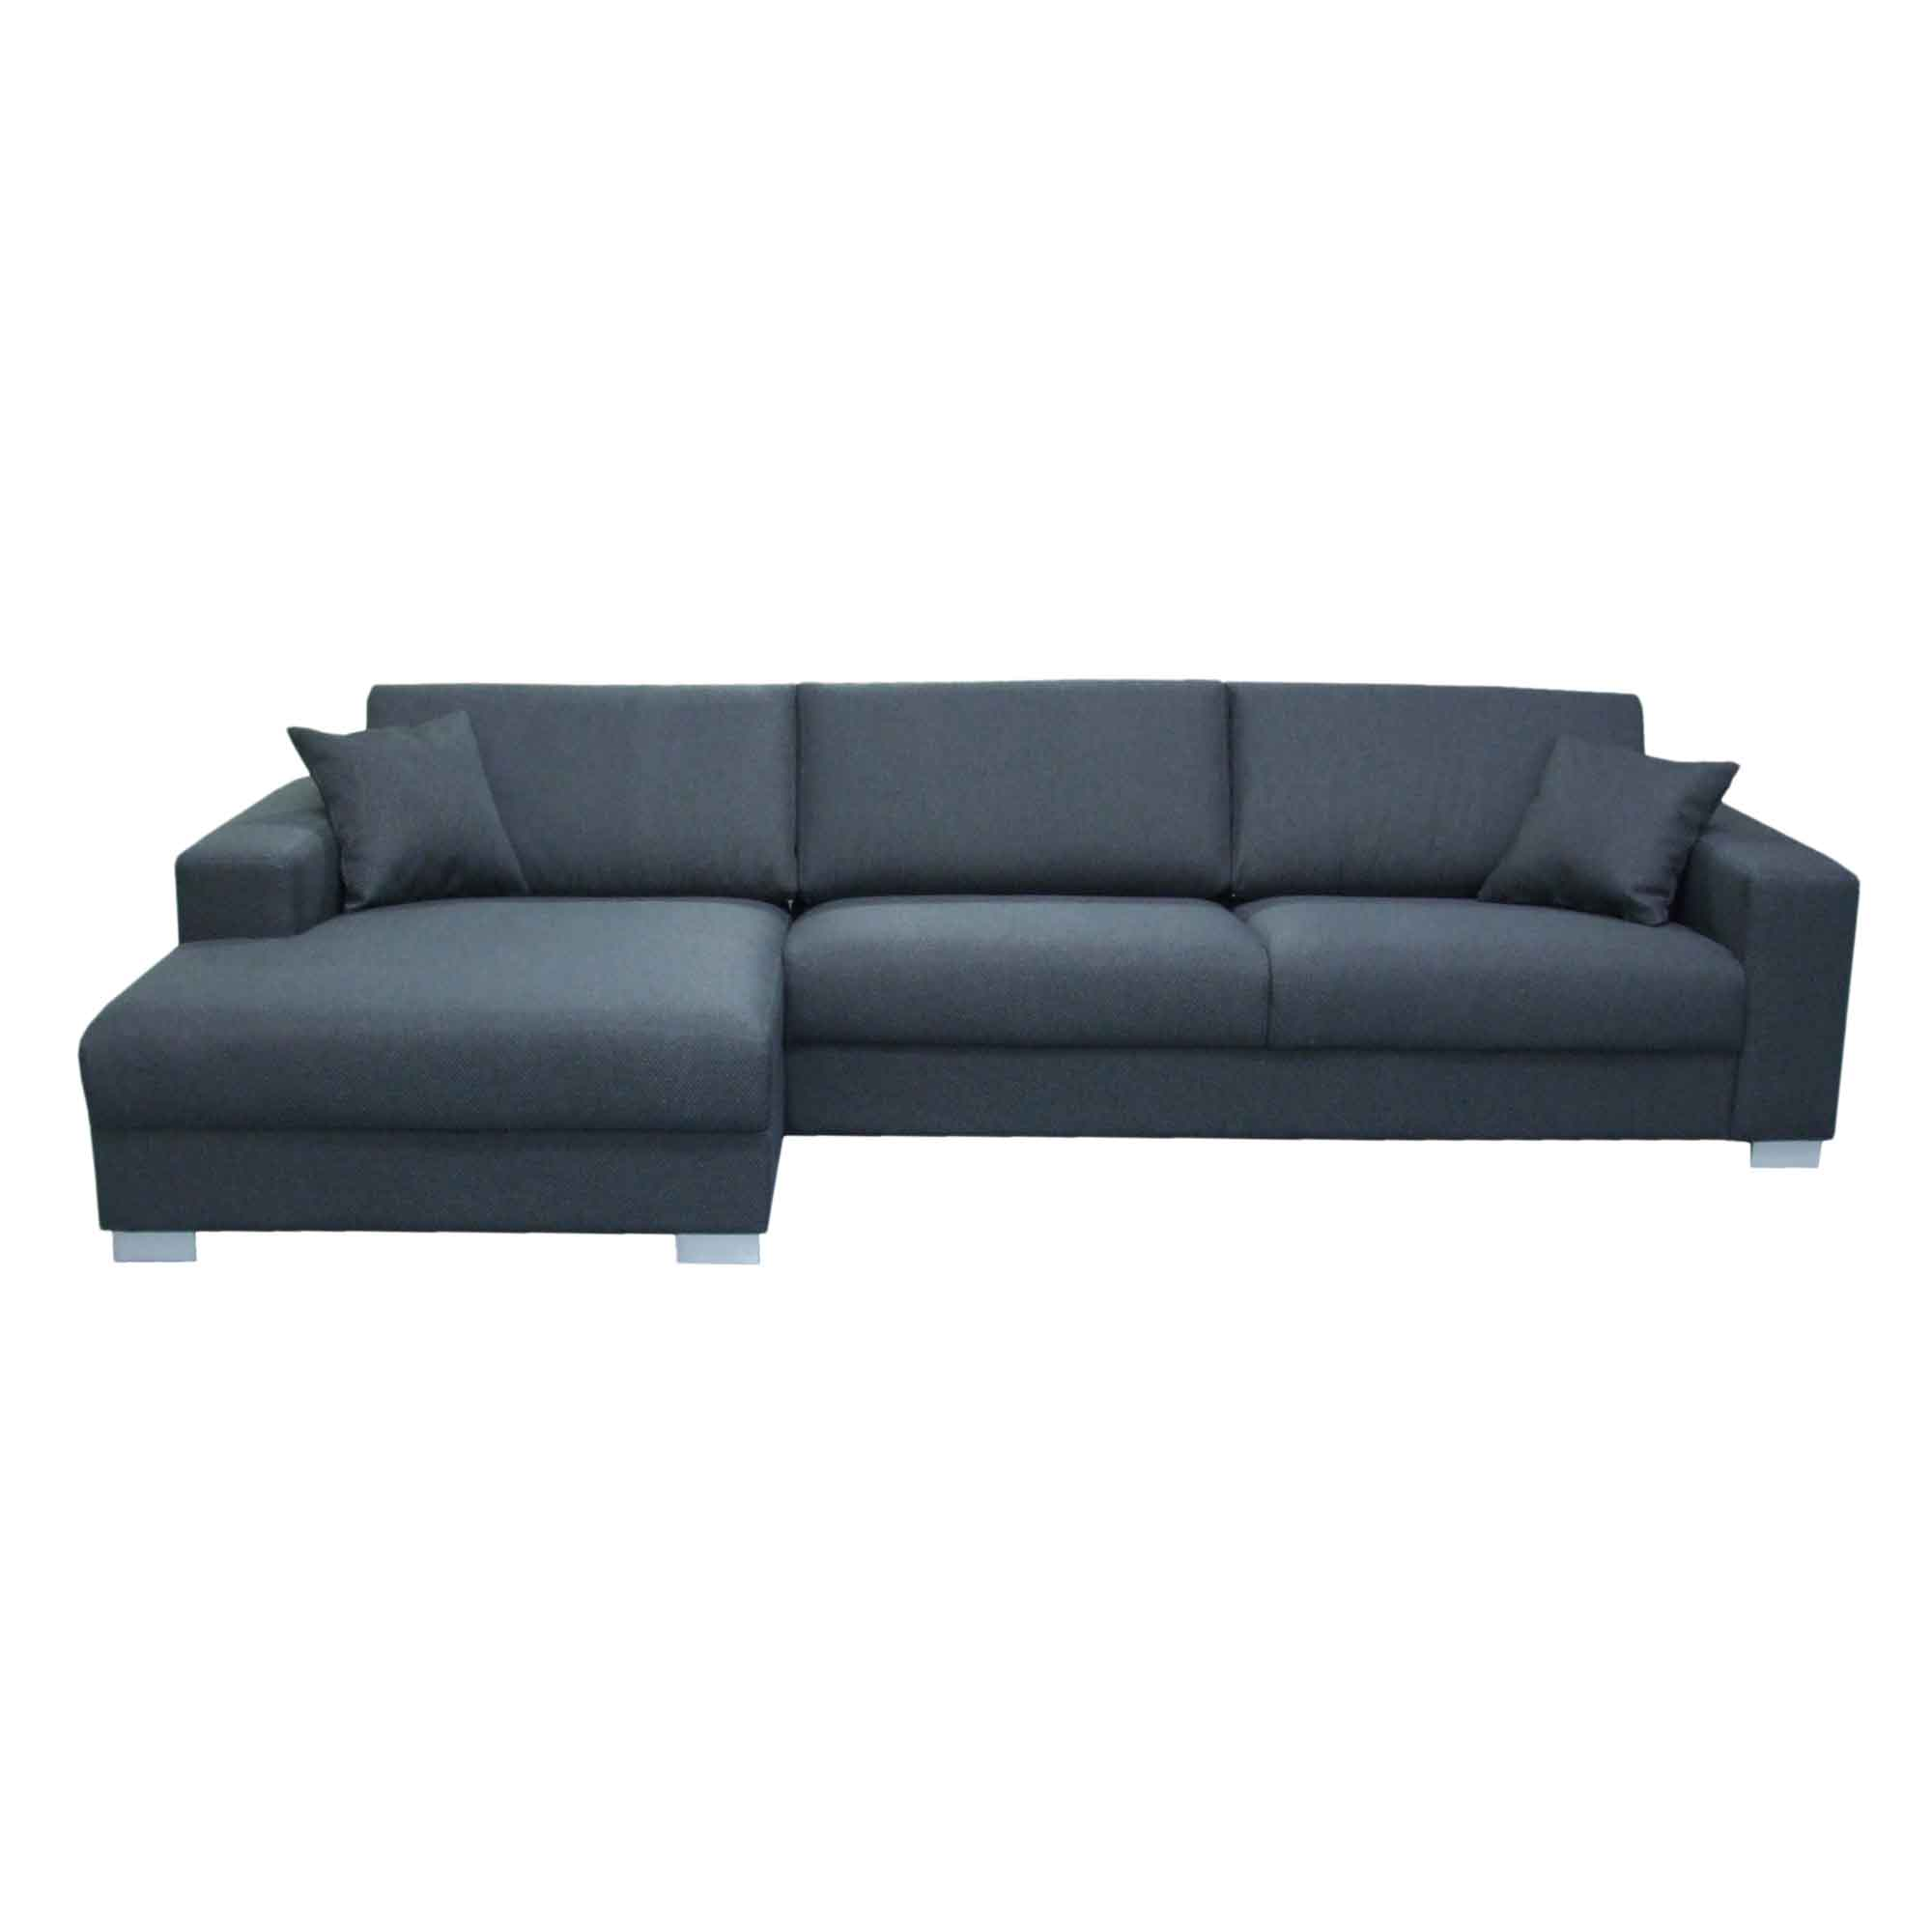 sofa in l form sofas top kategorien. Black Bedroom Furniture Sets. Home Design Ideas